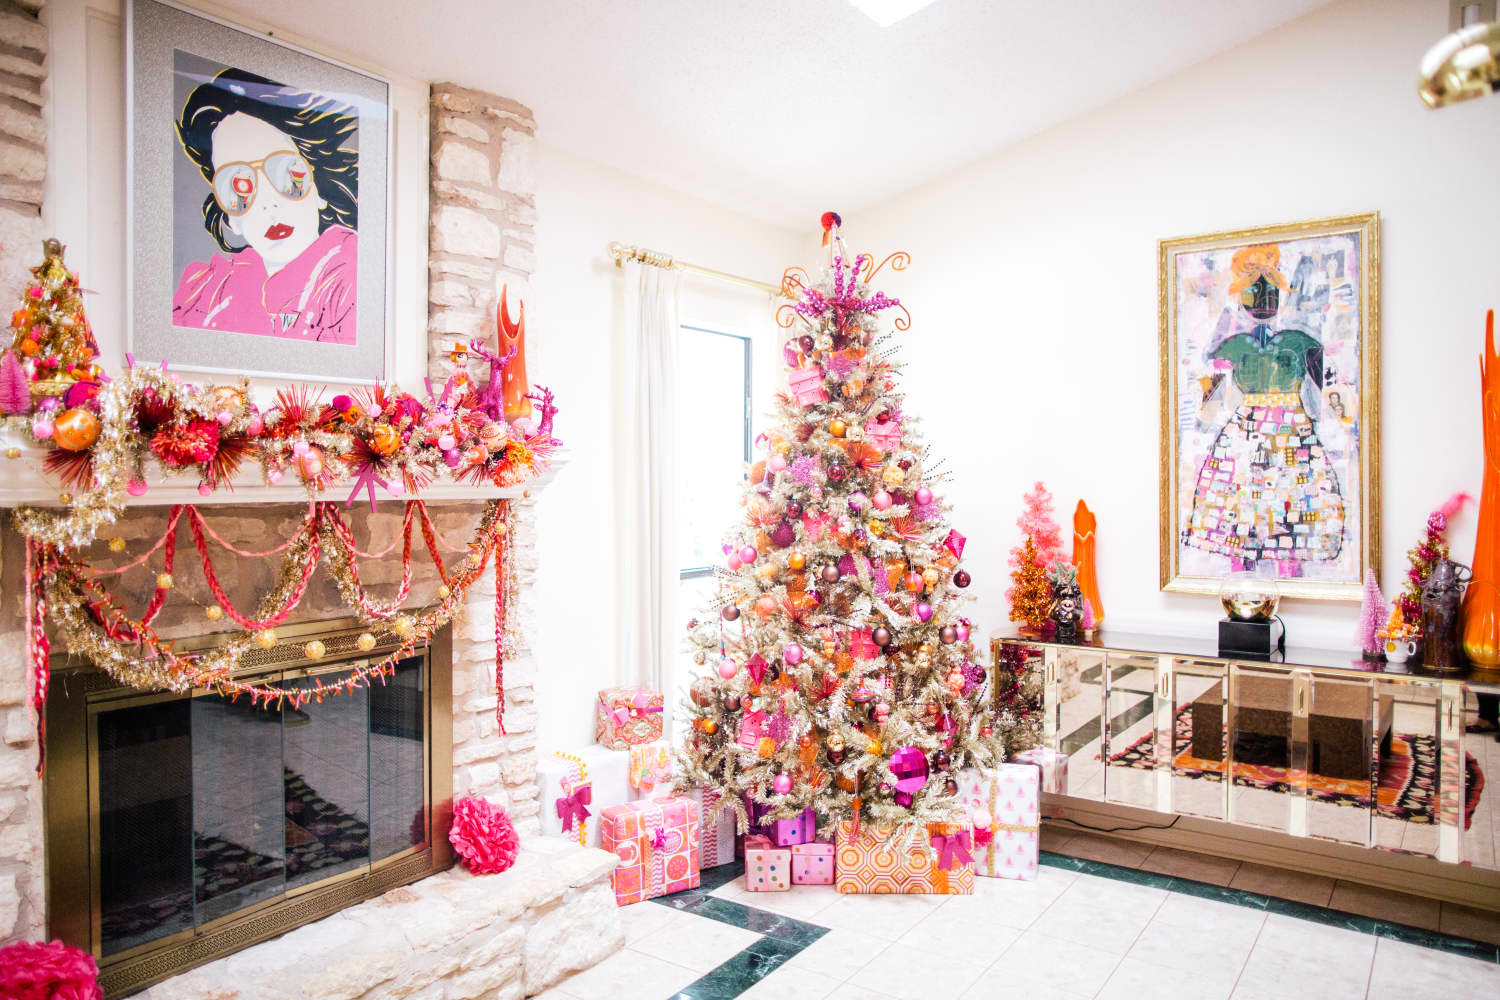 Wayfair Named This Metallic Shade the Christmas Tree Color of the Year, and It Wasn't What I Expected